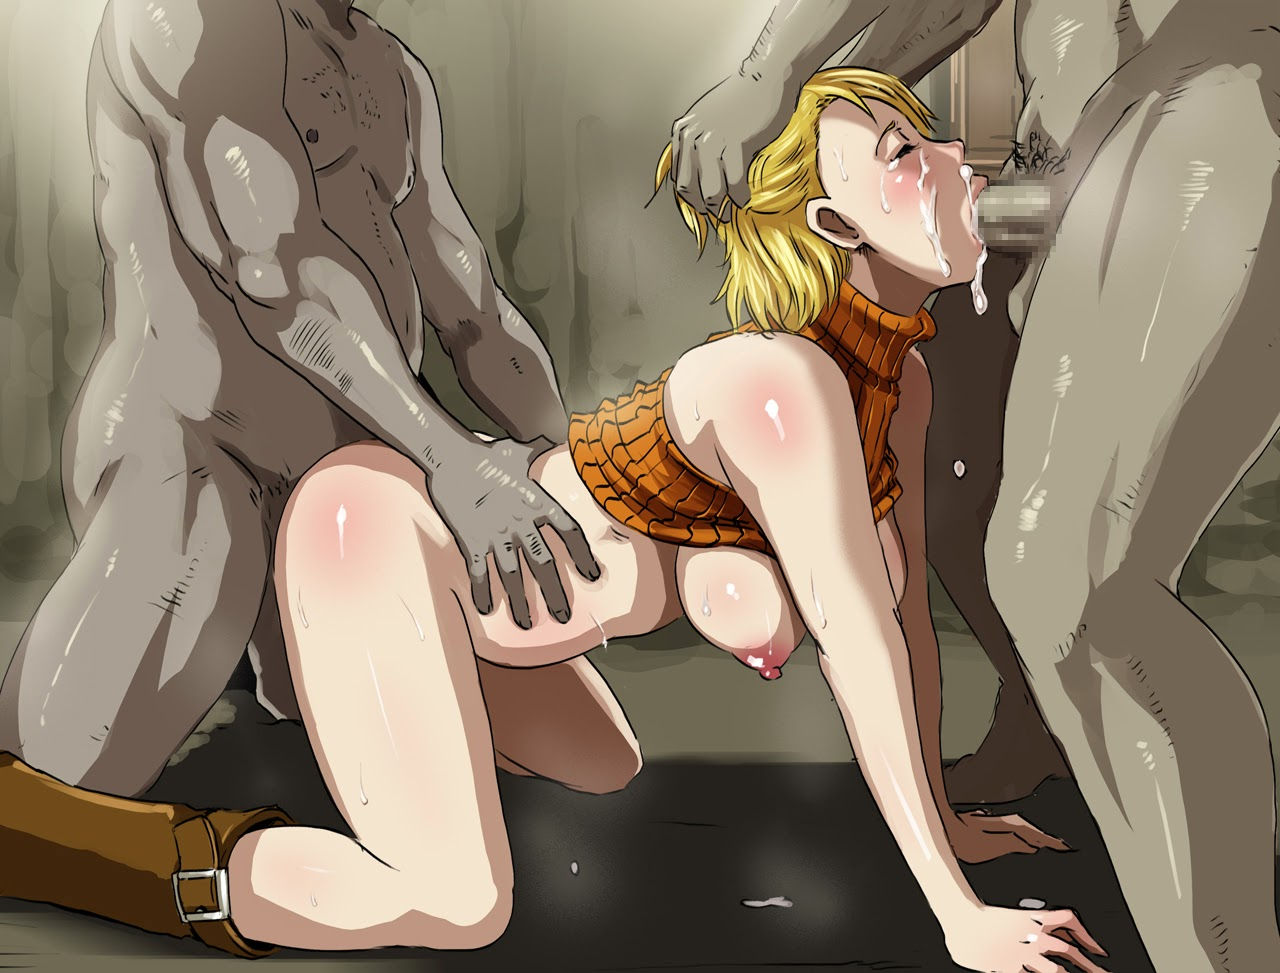 Resident evil 4 ashley porn video erotic photo